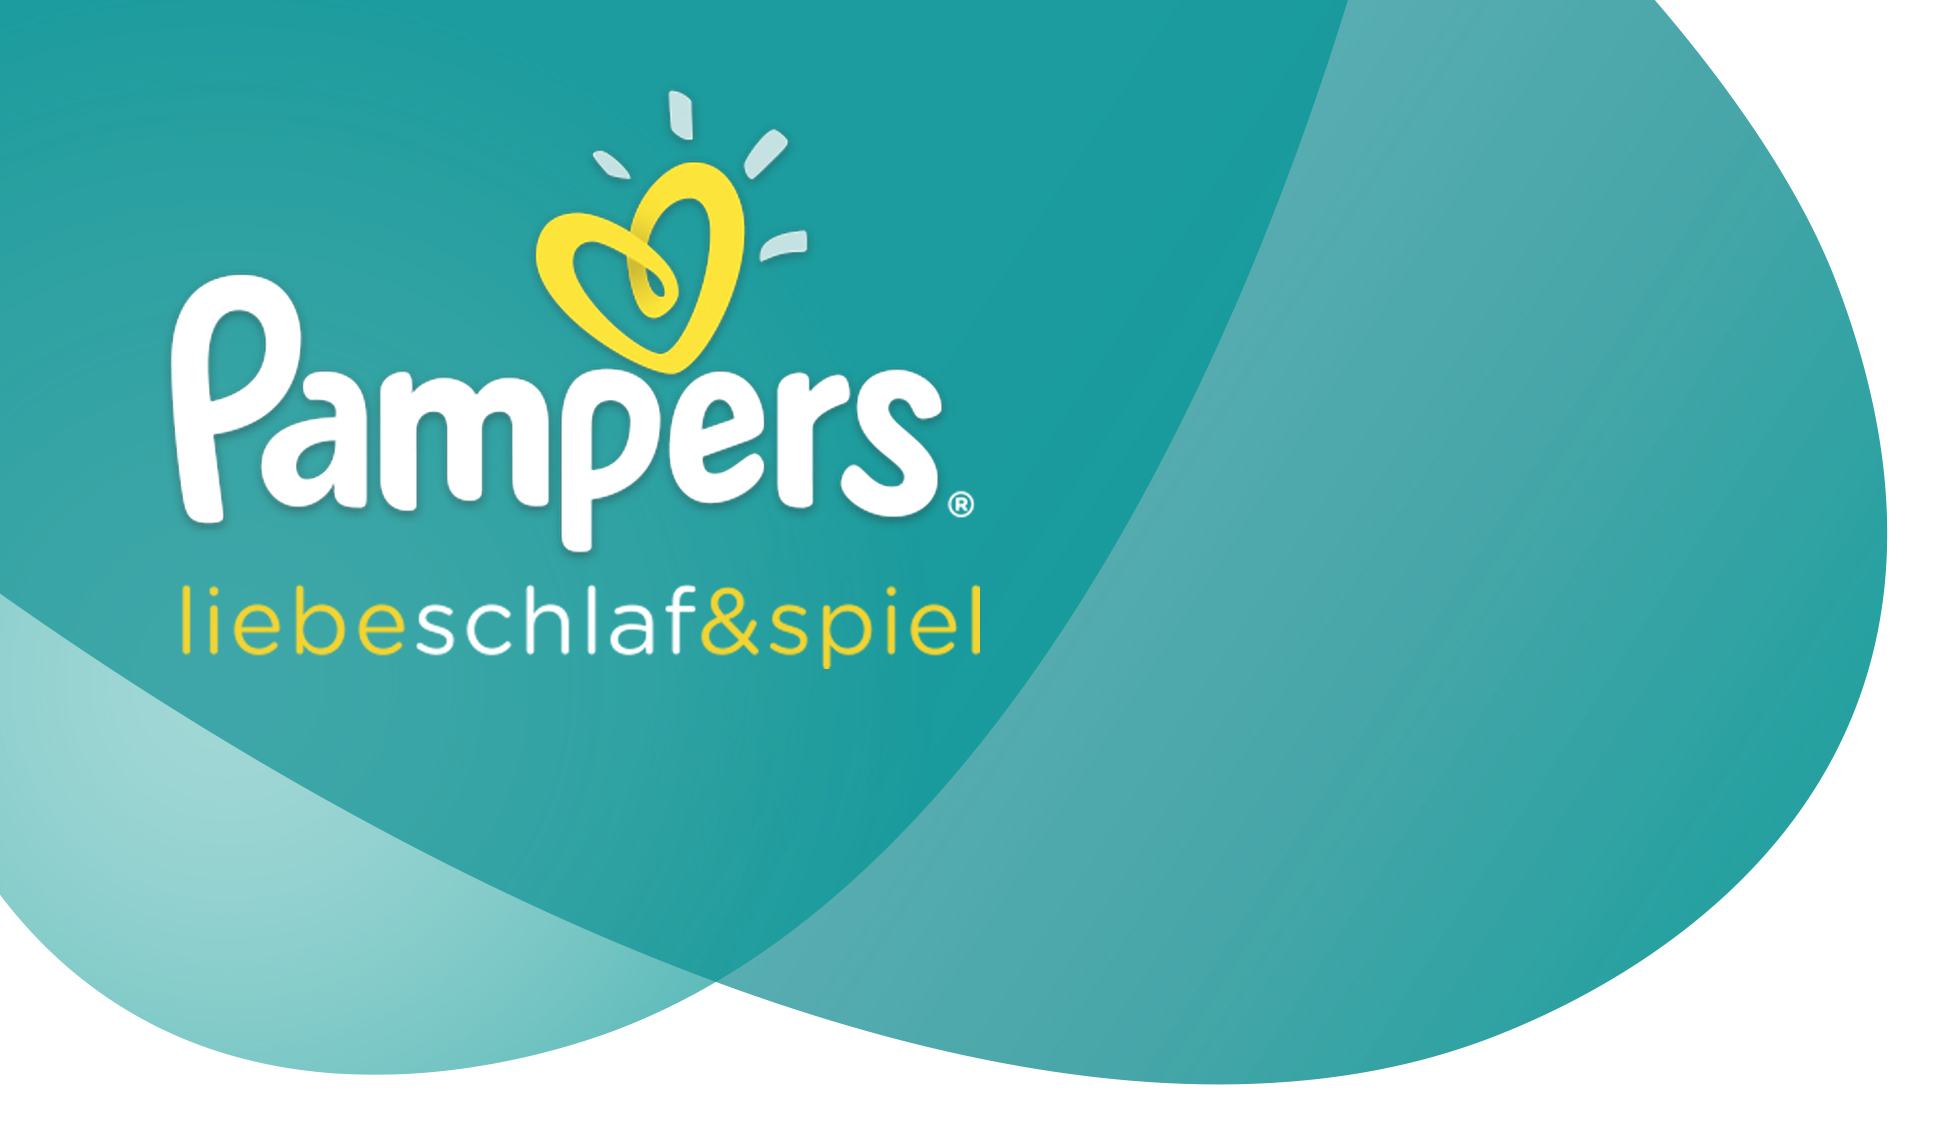 pampers diapers logo - photo #5